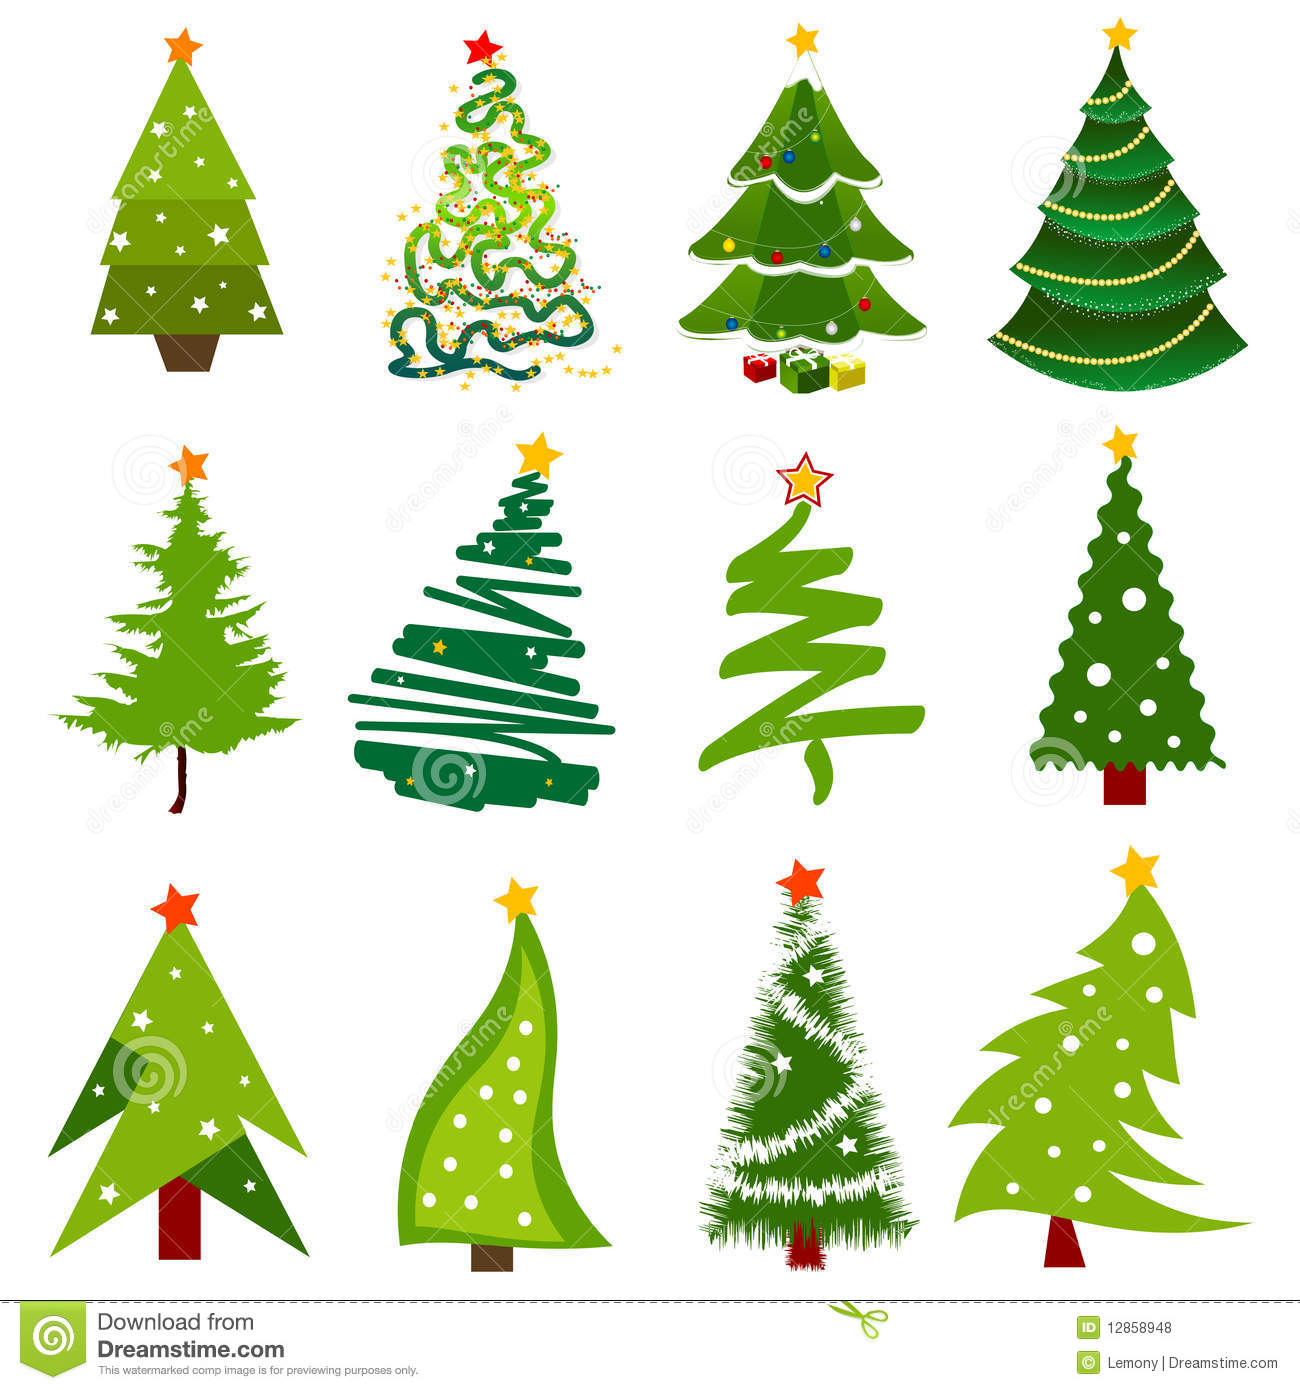 Christmas Tree Facebook Icon: Christmas Tree Icons Stock Vector. Image Of Plant